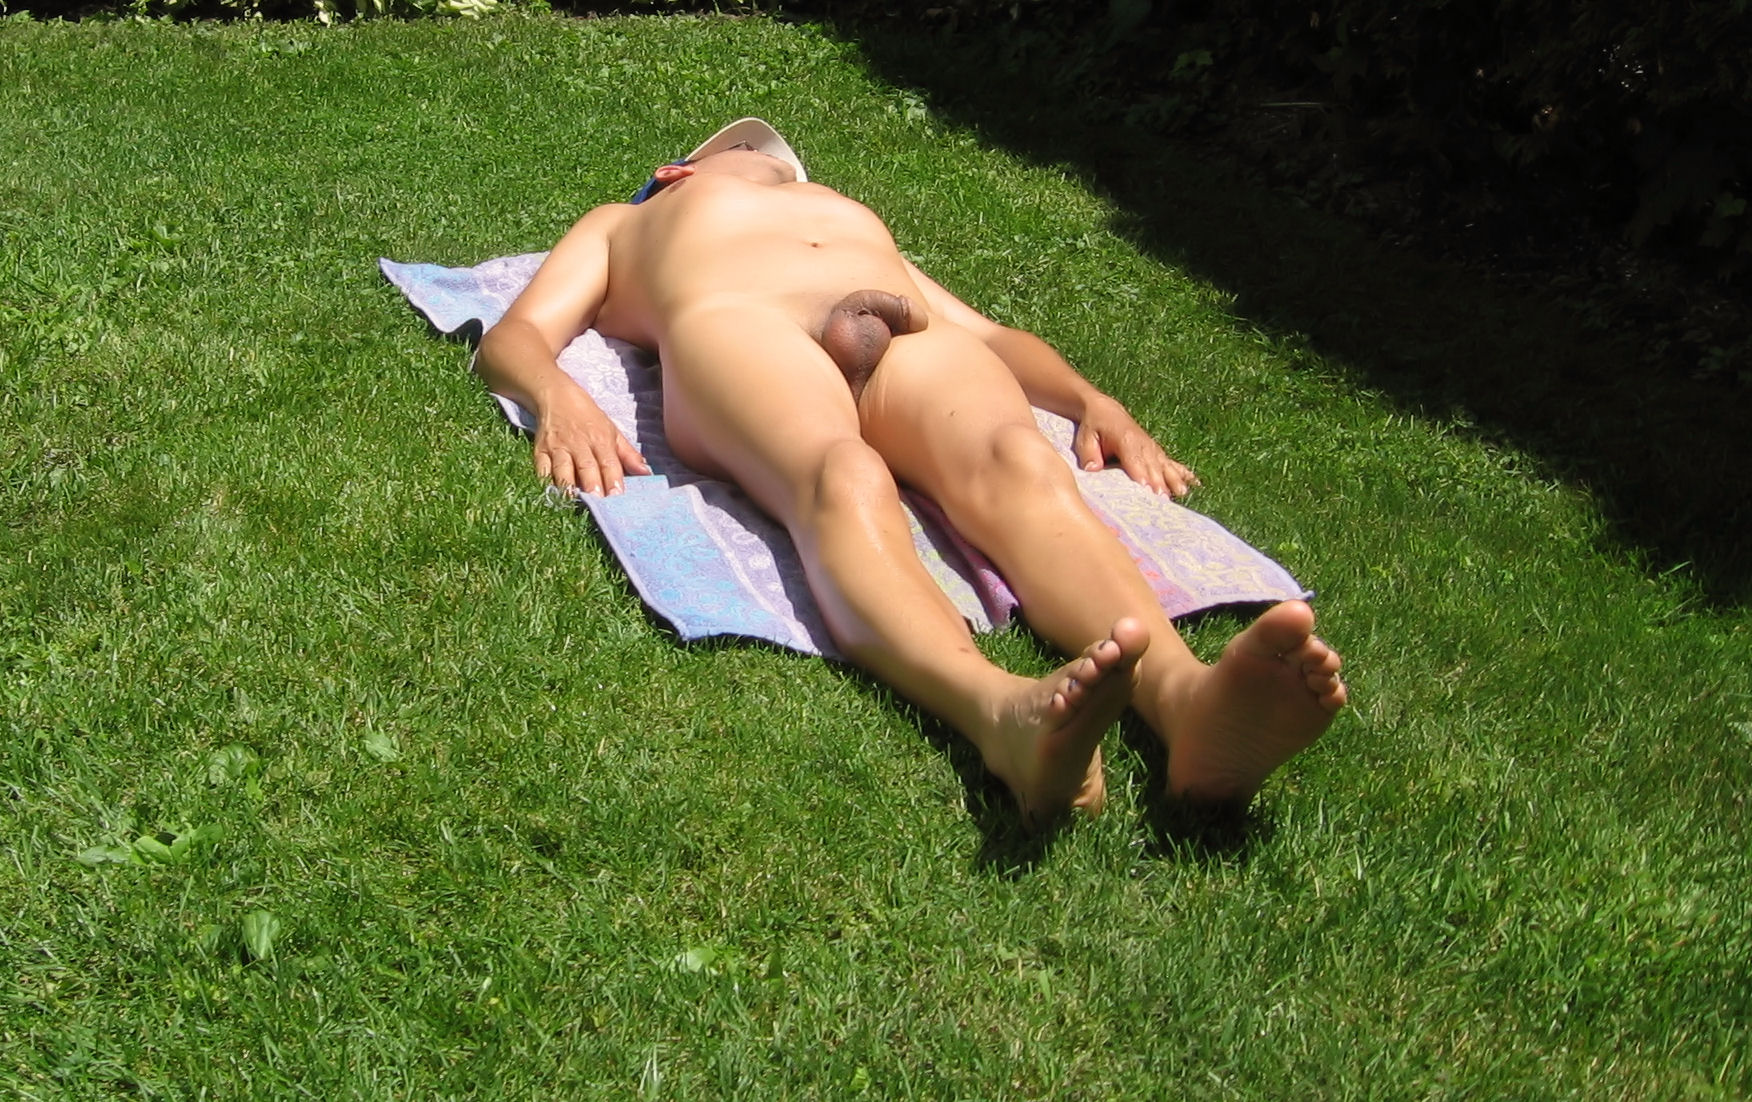 from Spencer gay suntanning